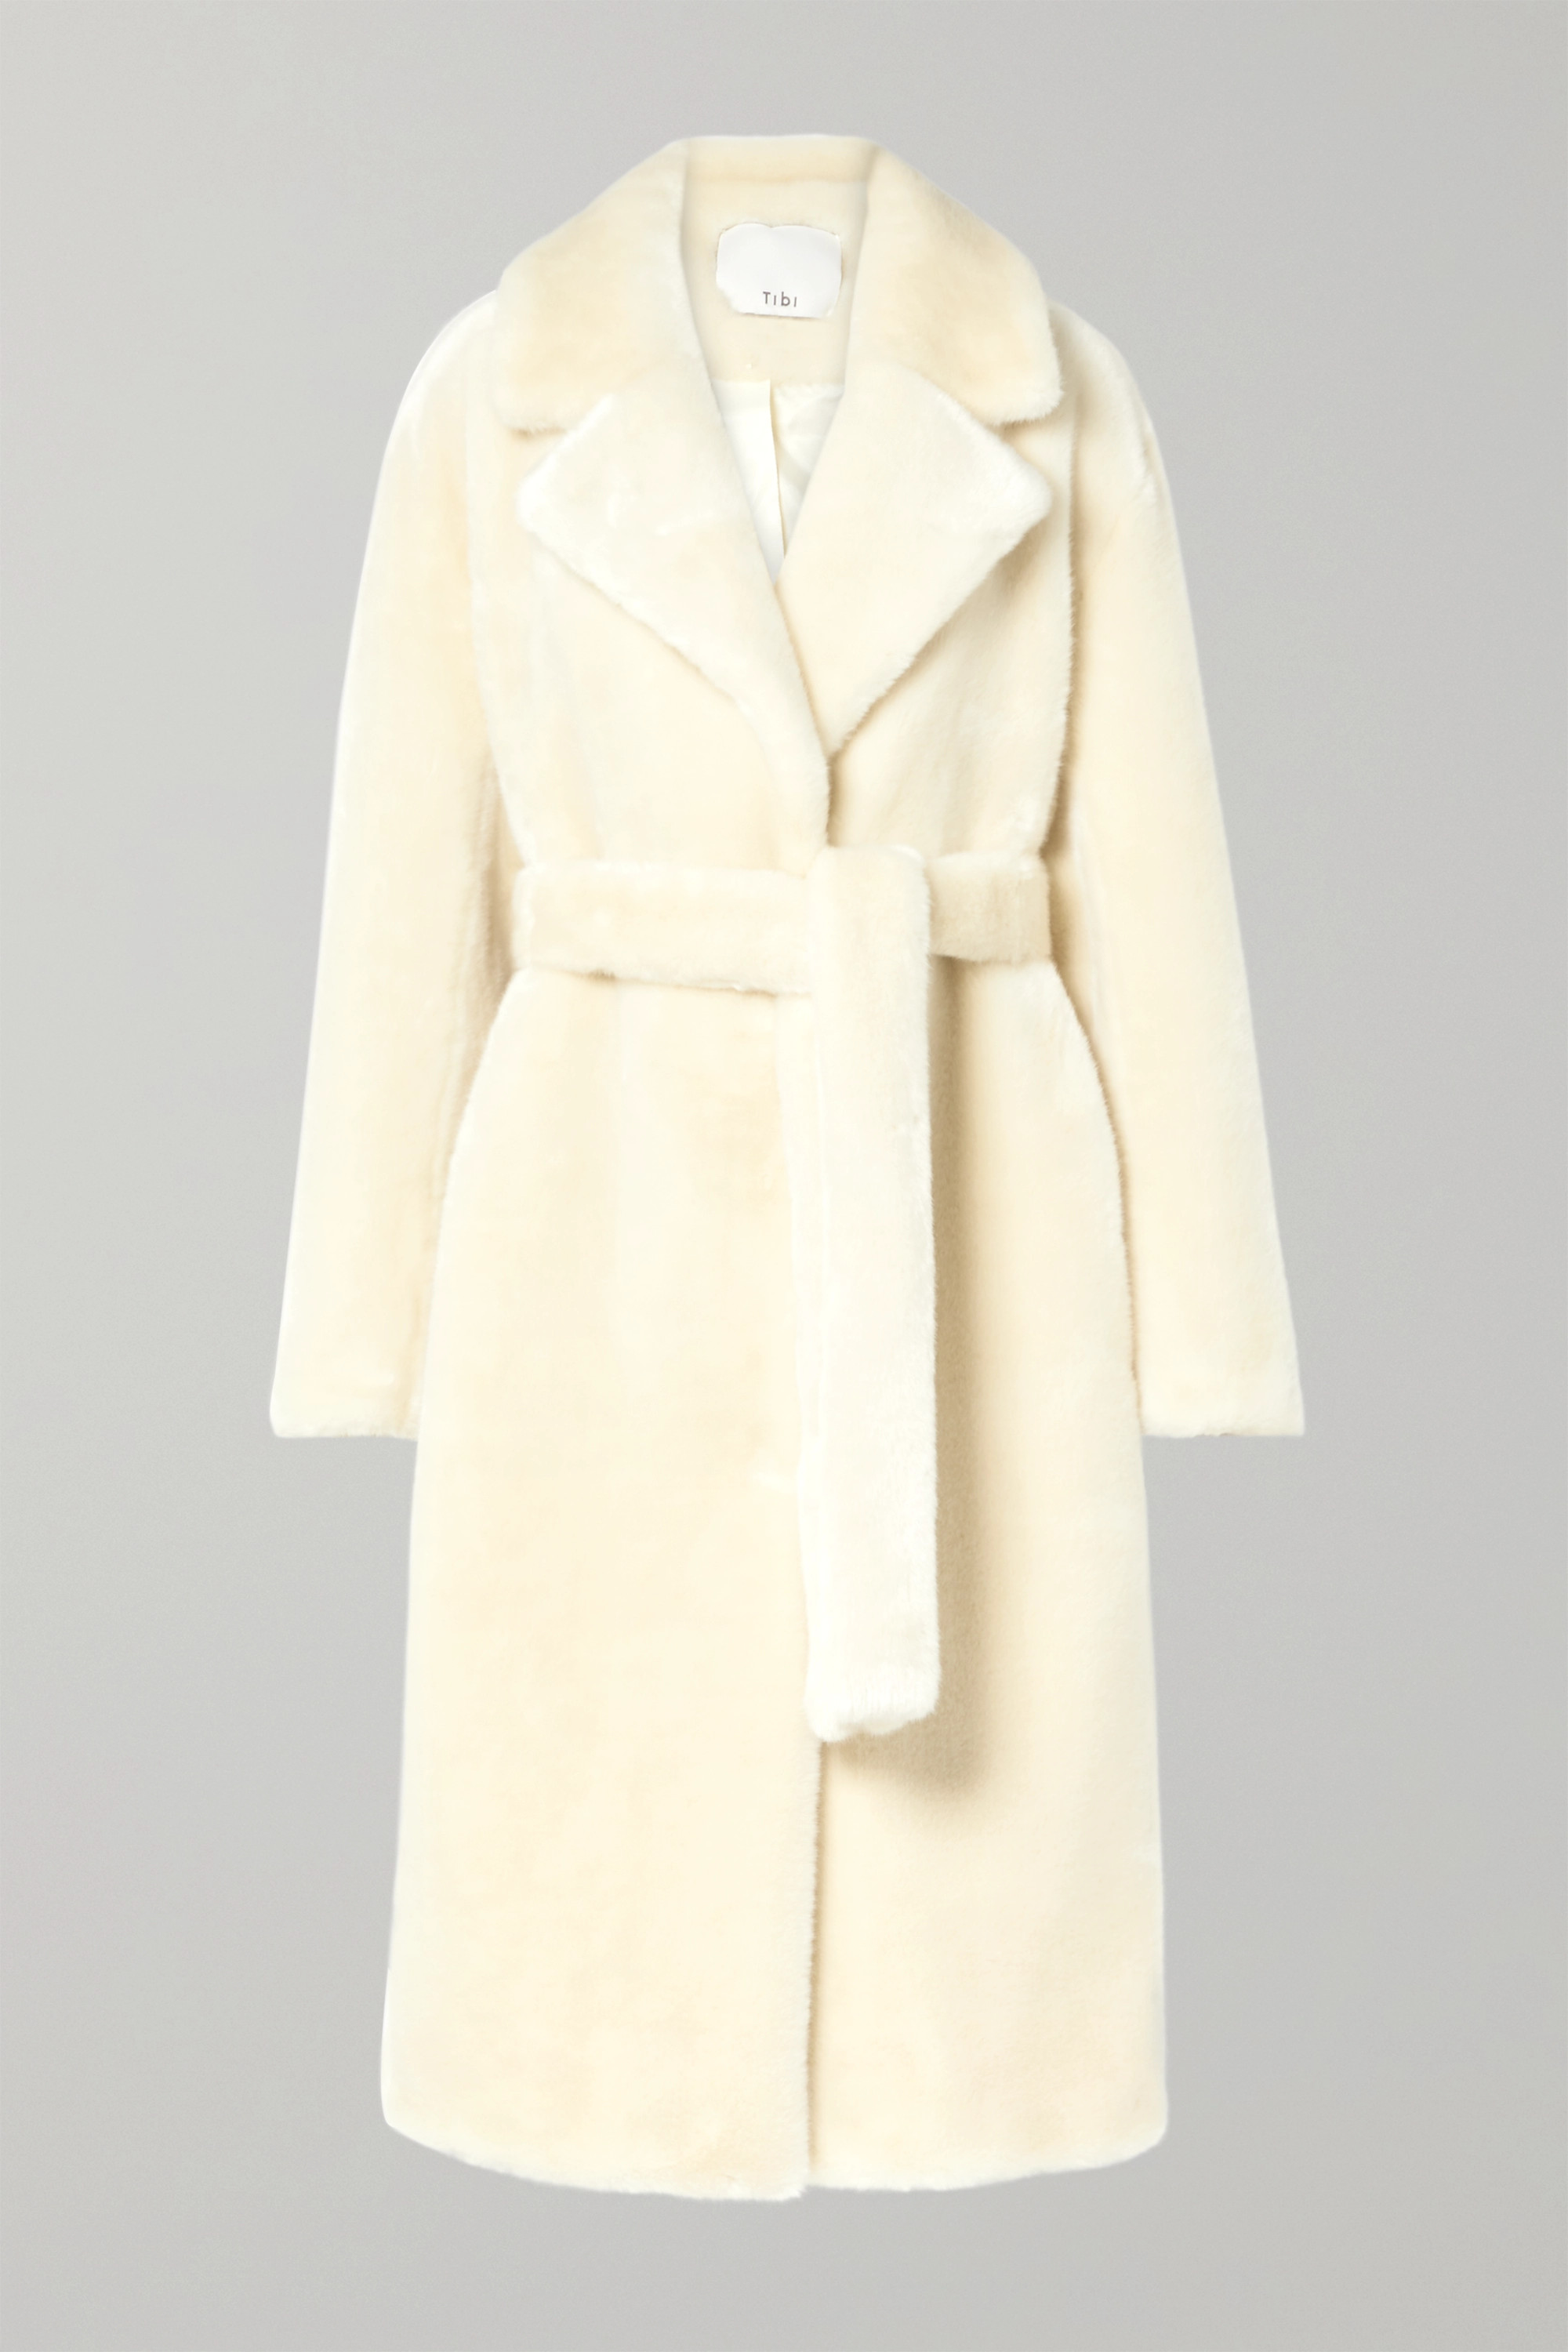 Tibi faux fur belted coat | Browns